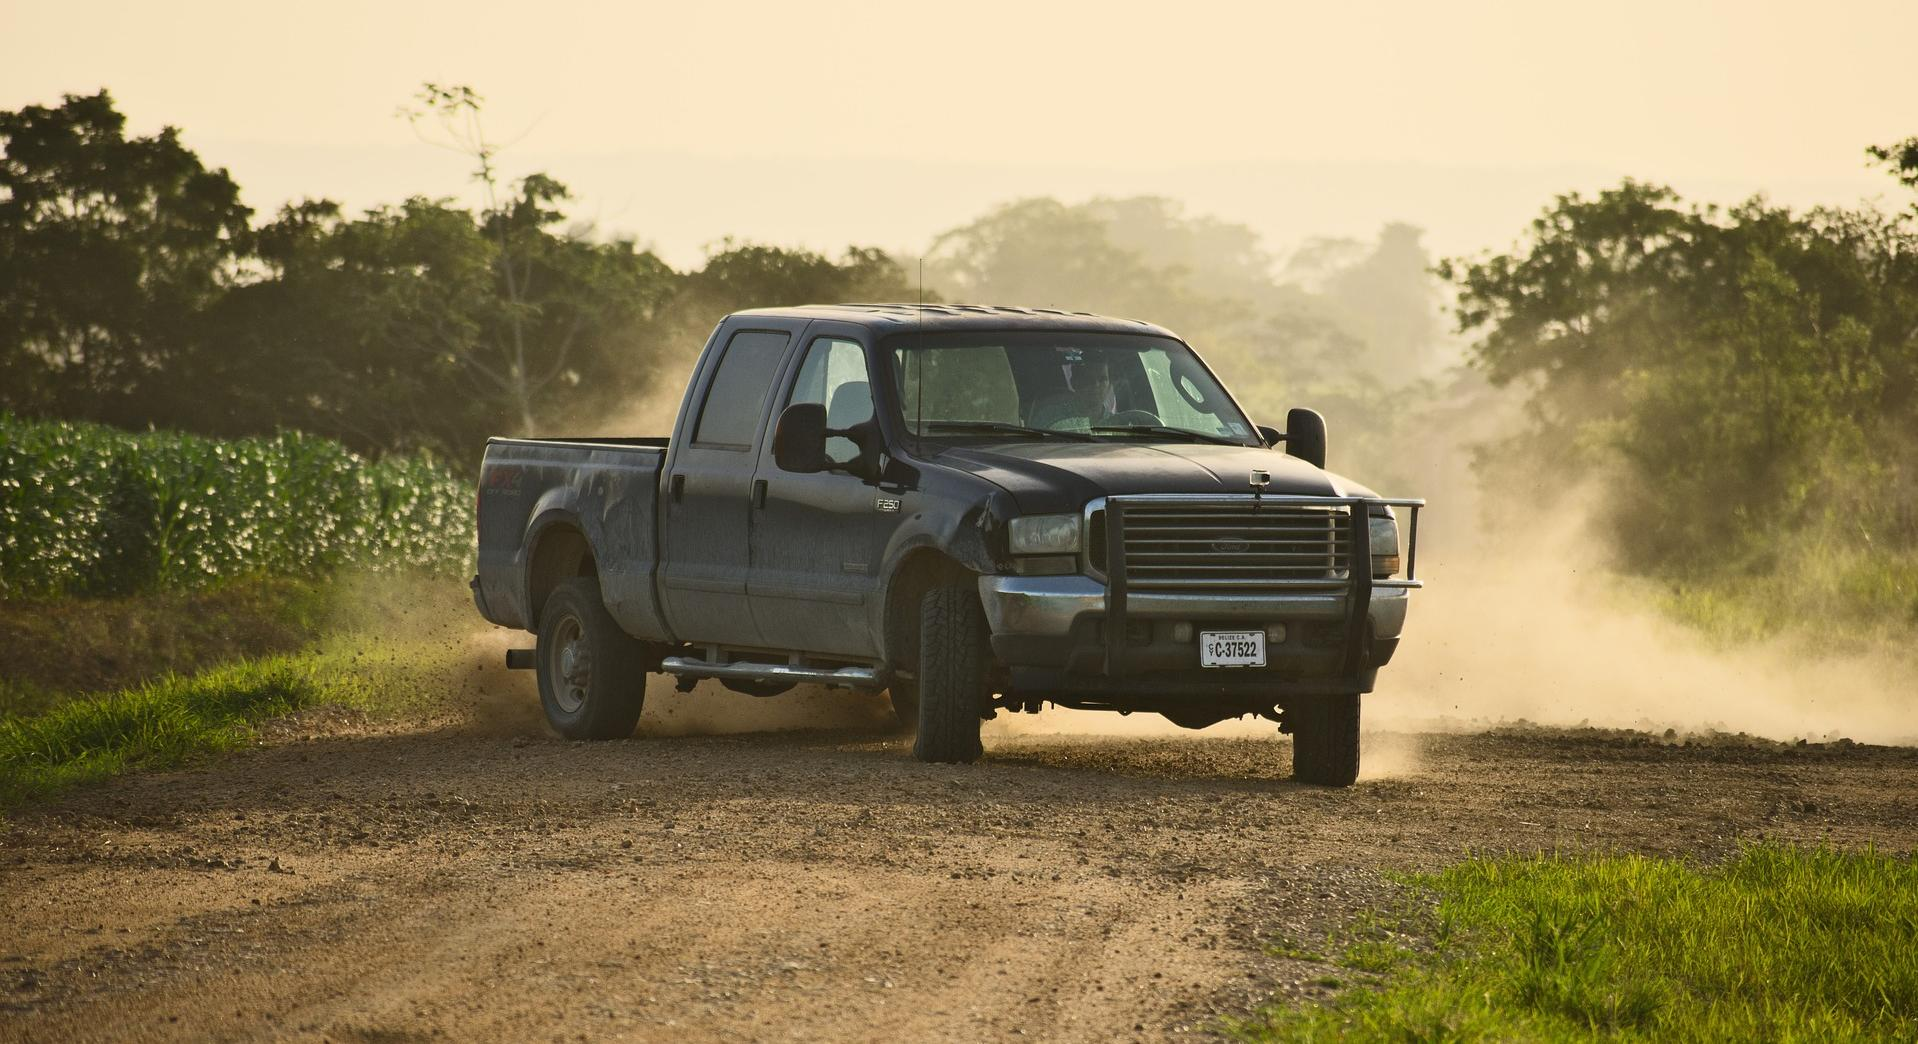 pickup truck on dirt road